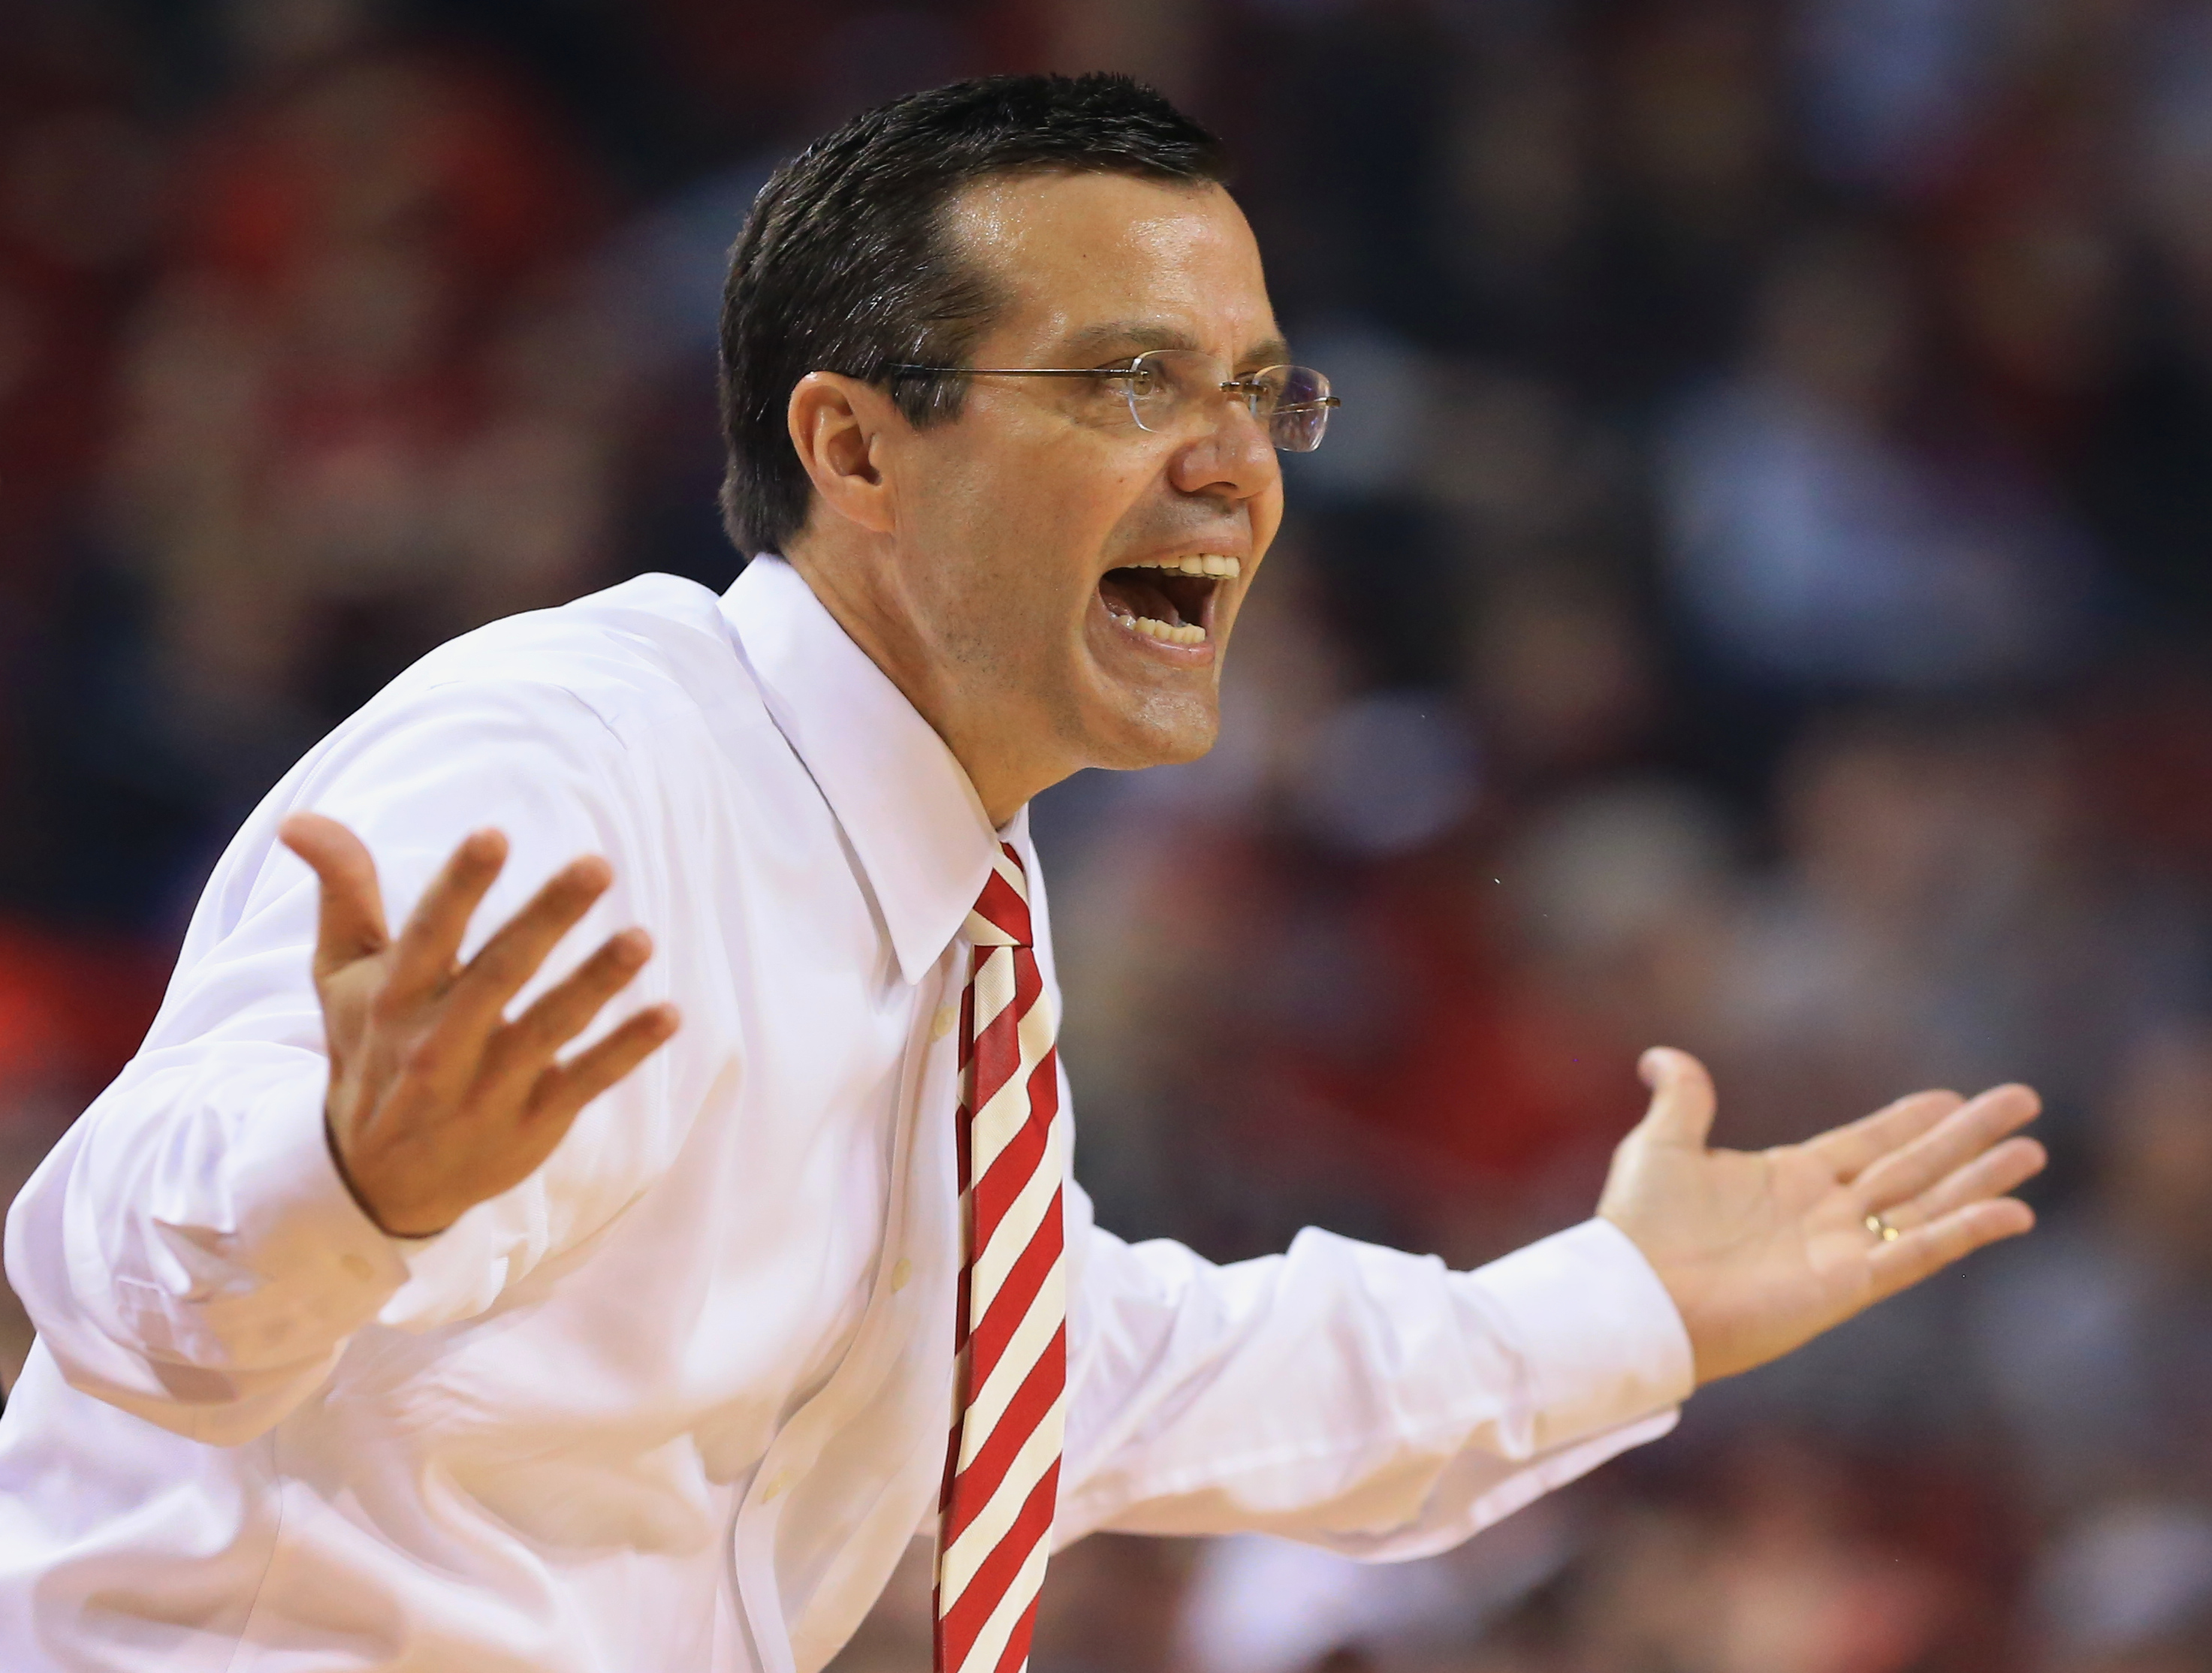 Nebraska coach Tim Miles reacts after a technical foul against his team during the first half of an NCAA college basketball game against Maryland in Lincoln, Neb., Sunday, March 8, 2015. (AP Photo/Nati Harnik)